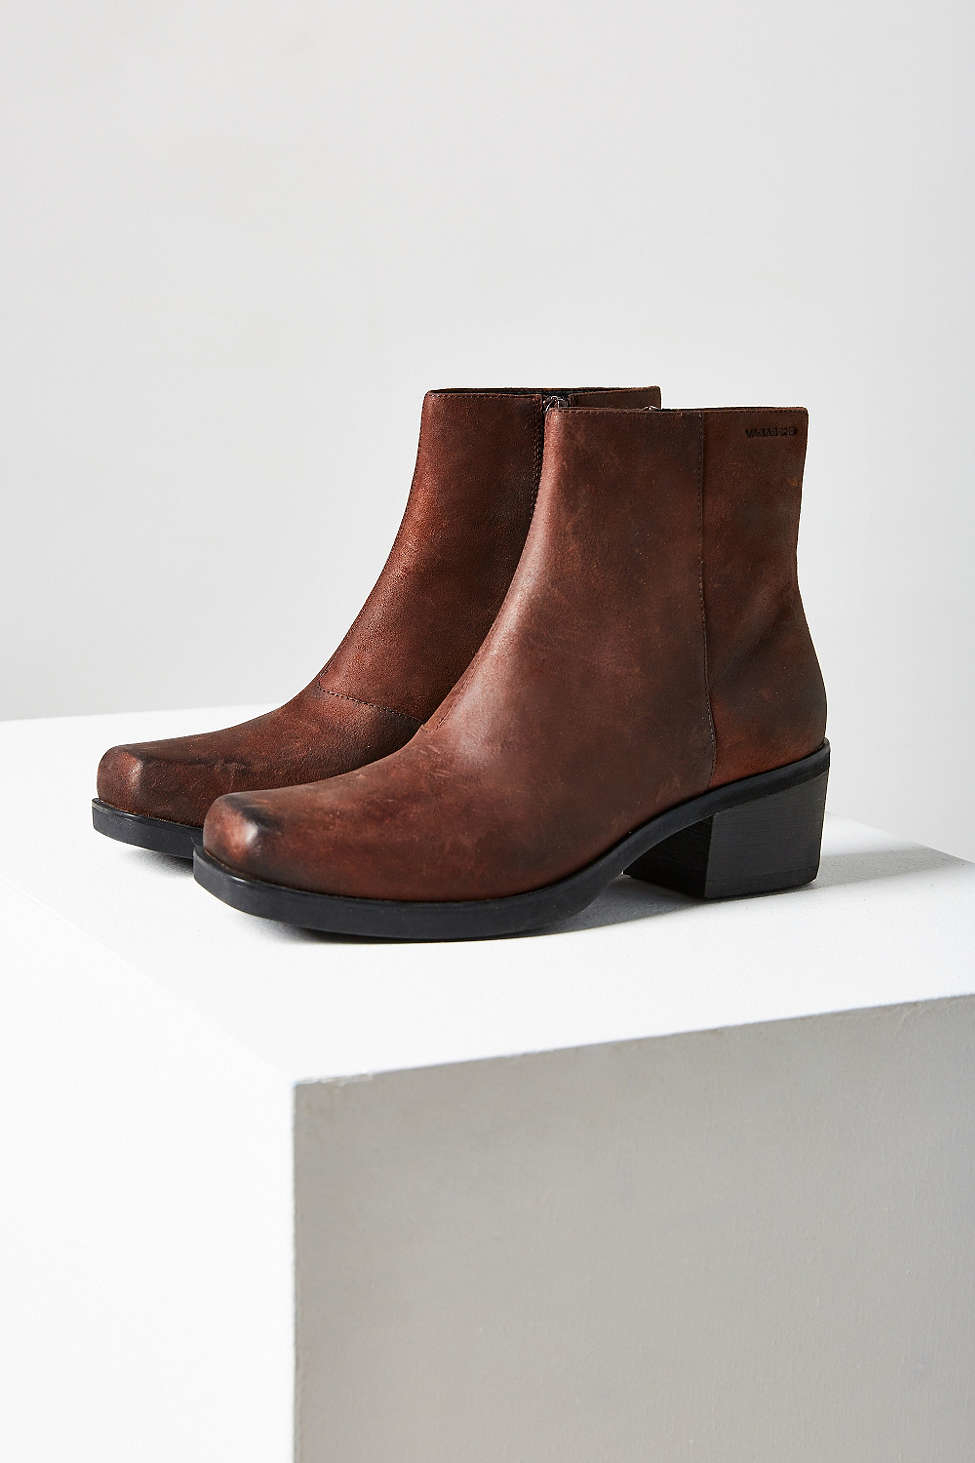 vagabond ariana leather ankle boot in brown lyst. Black Bedroom Furniture Sets. Home Design Ideas